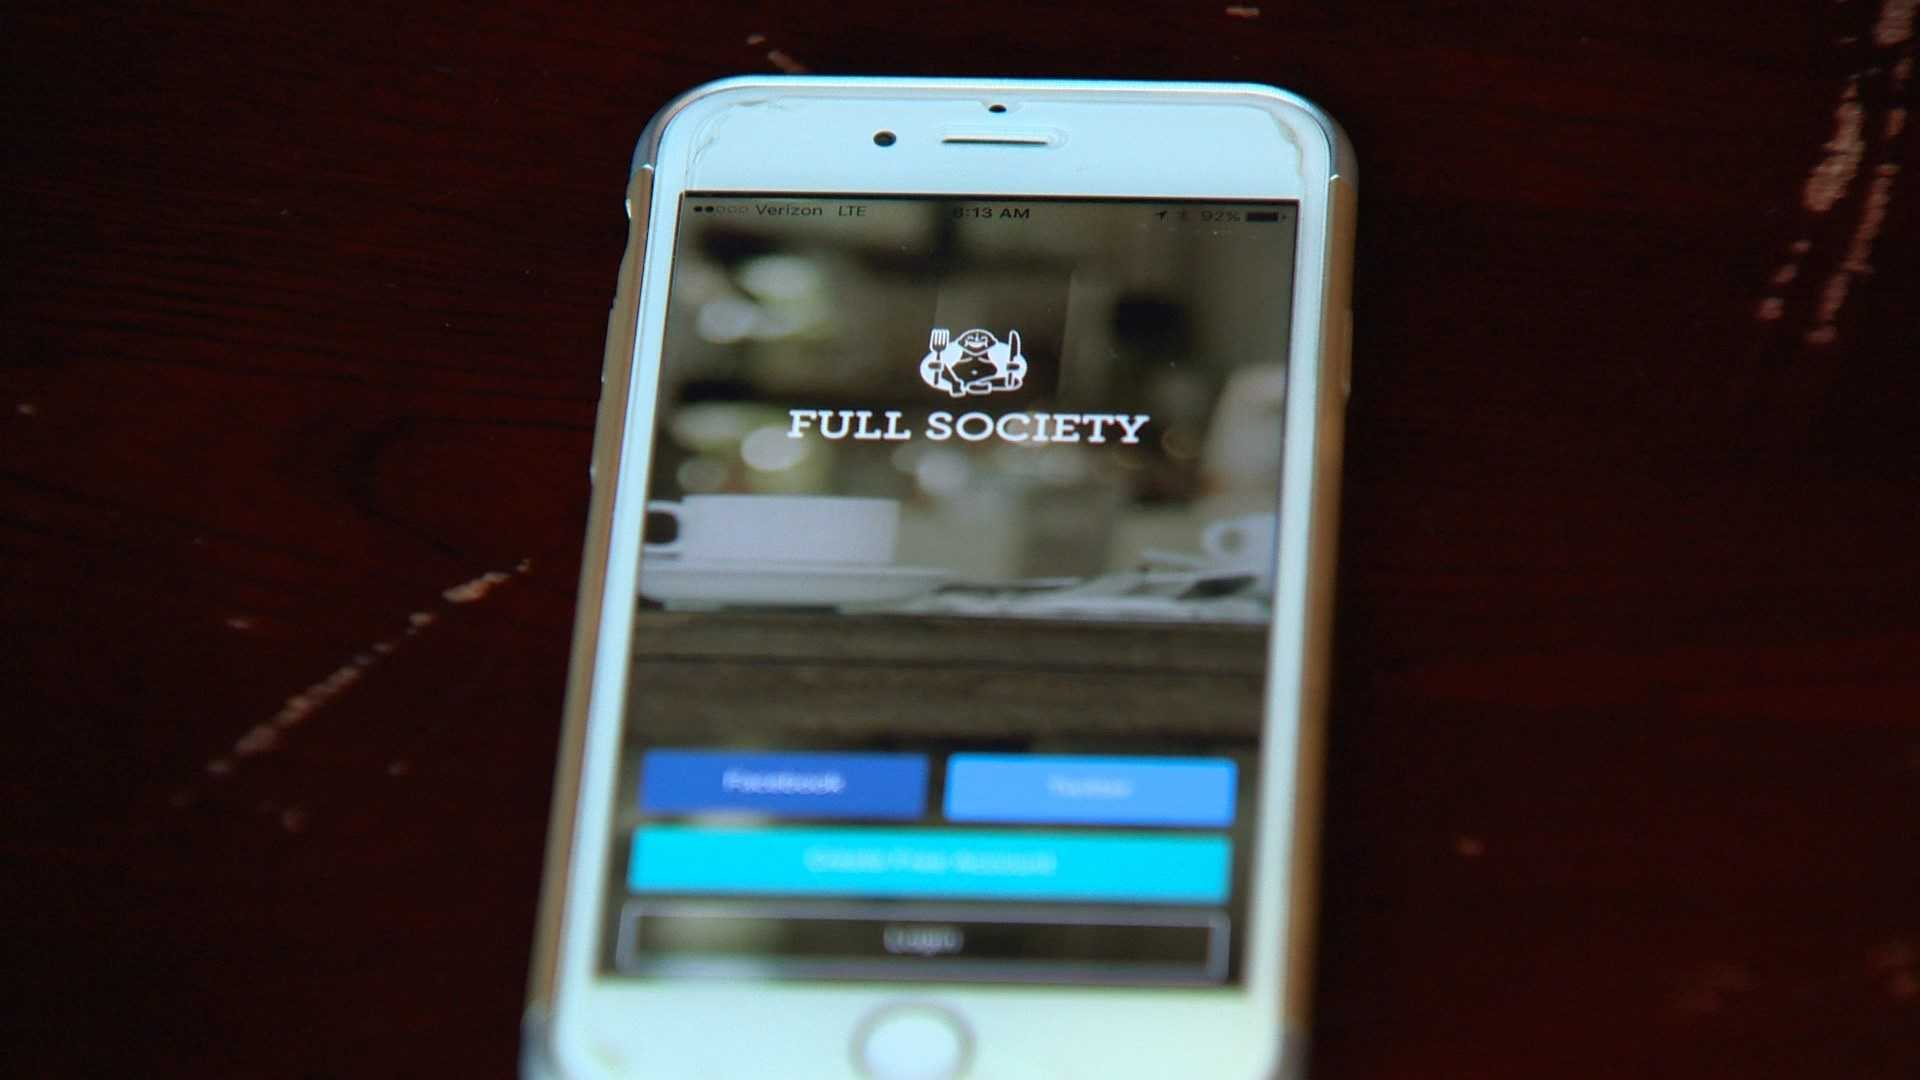 Full Society is an app that allows customers at a restaurant to split a bill over the phone.